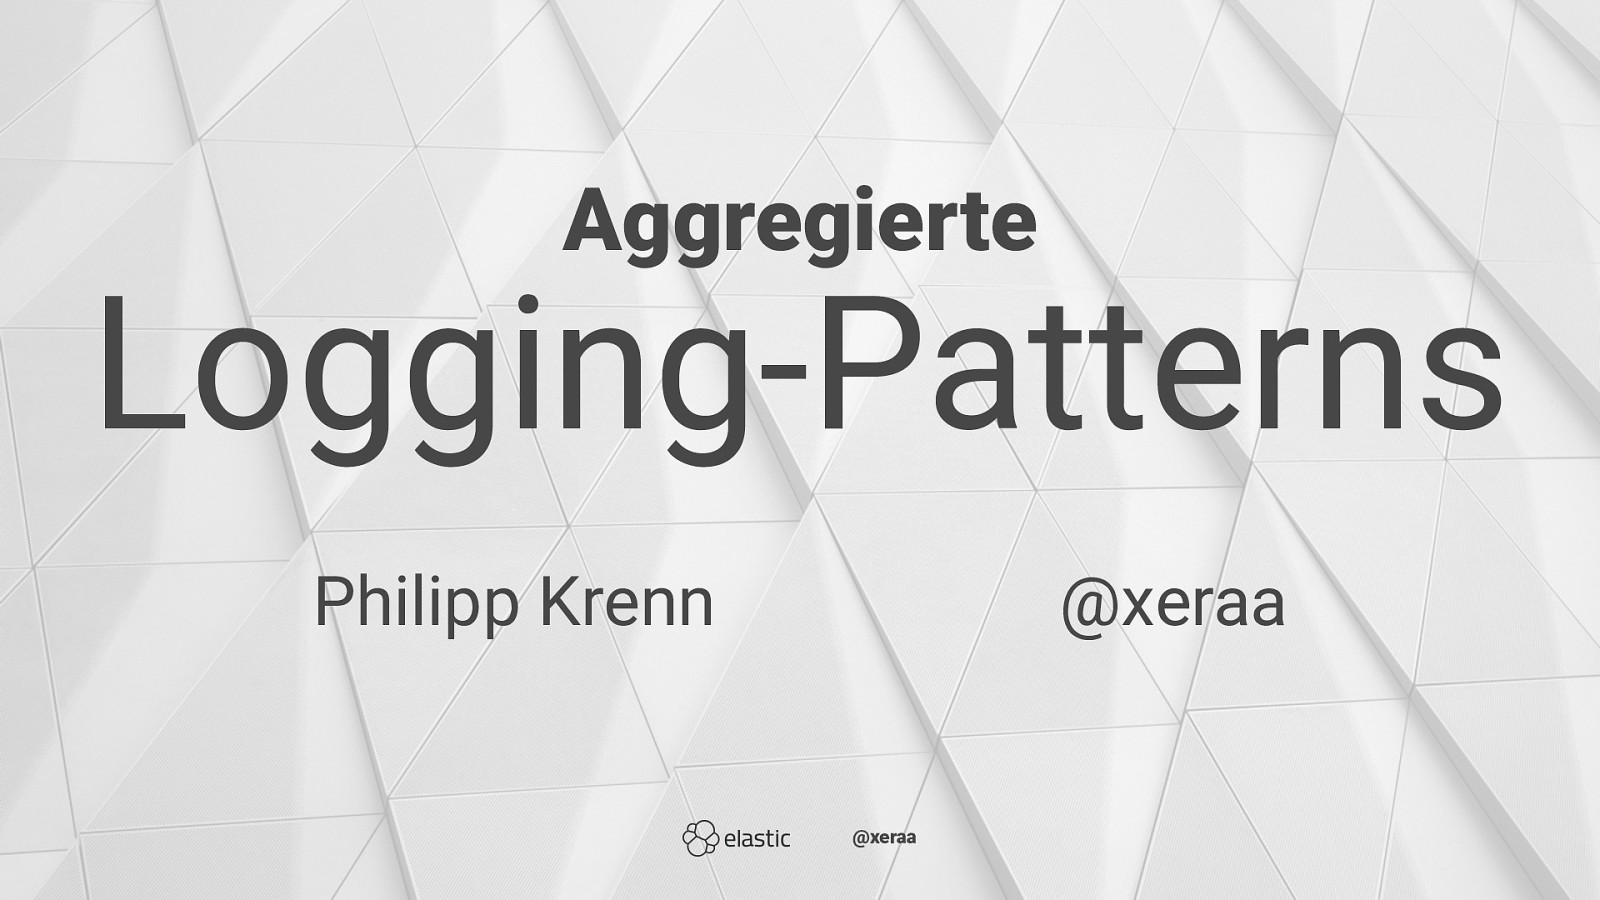 Aggregierte Logging-Patterns